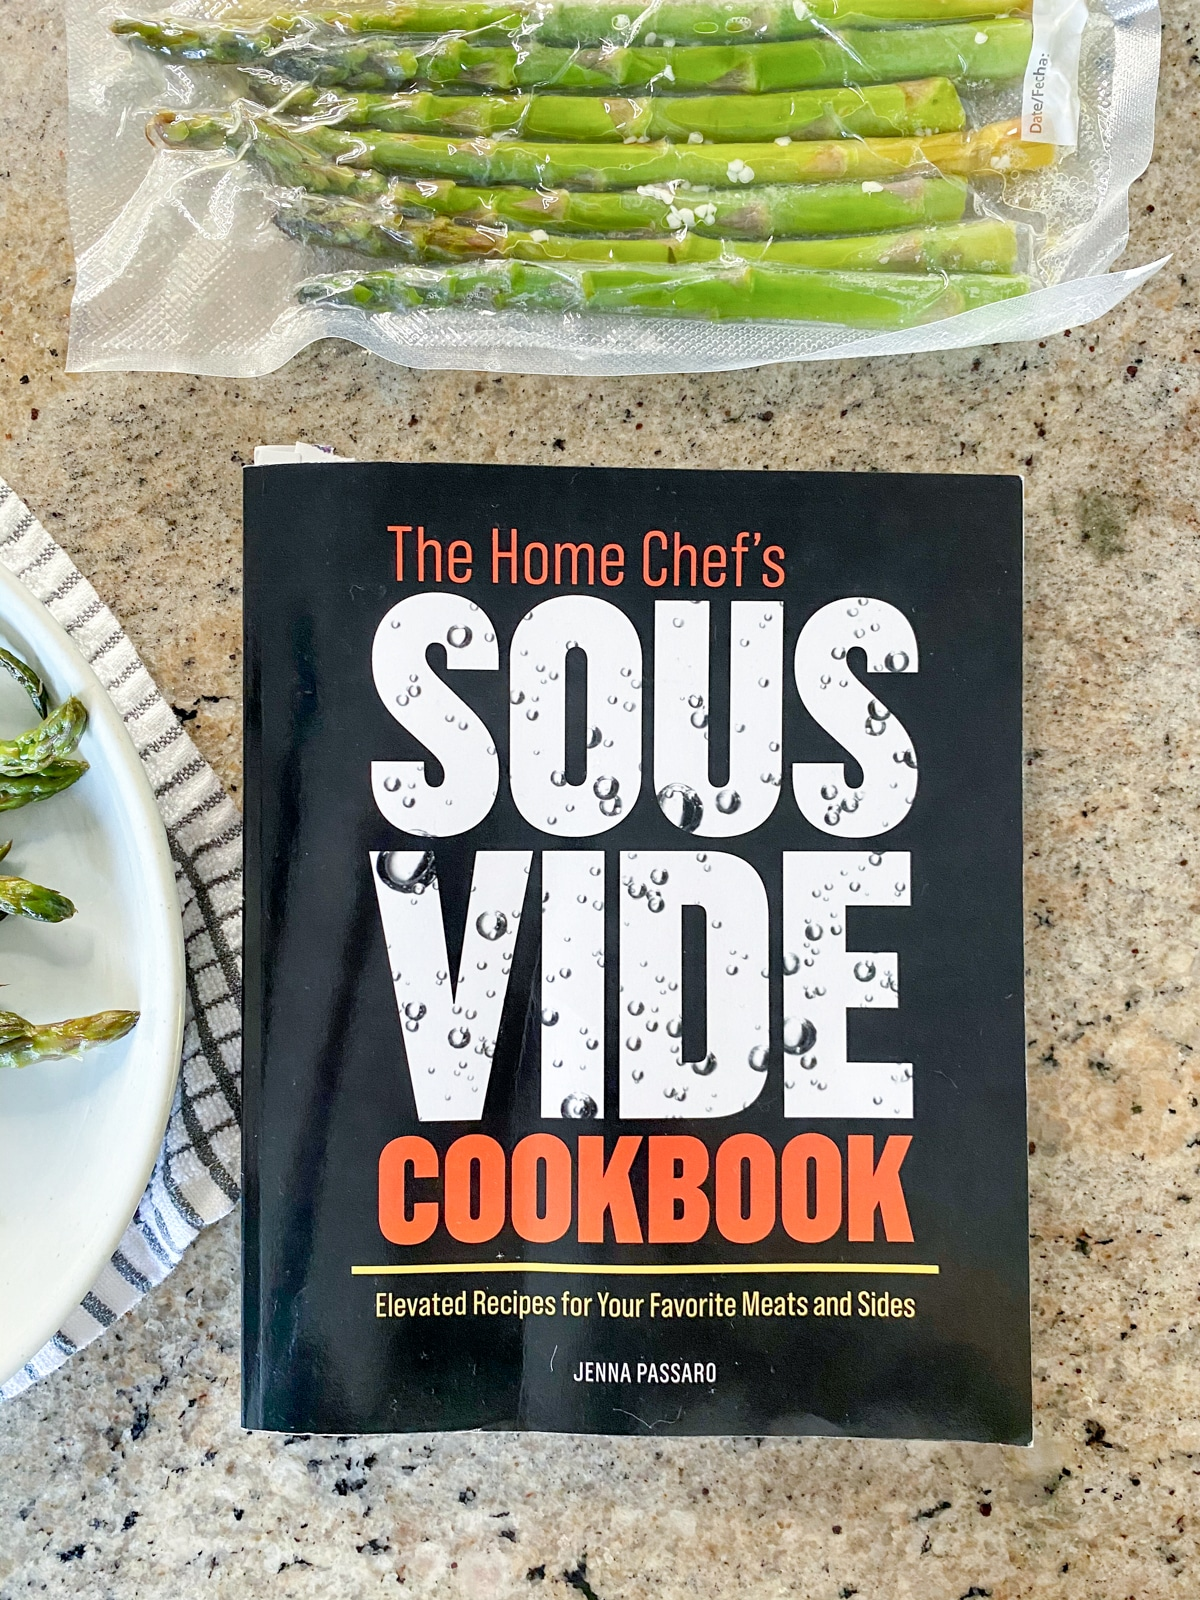 Sous Vide Asparagus with The home chef's sous vide cookbook